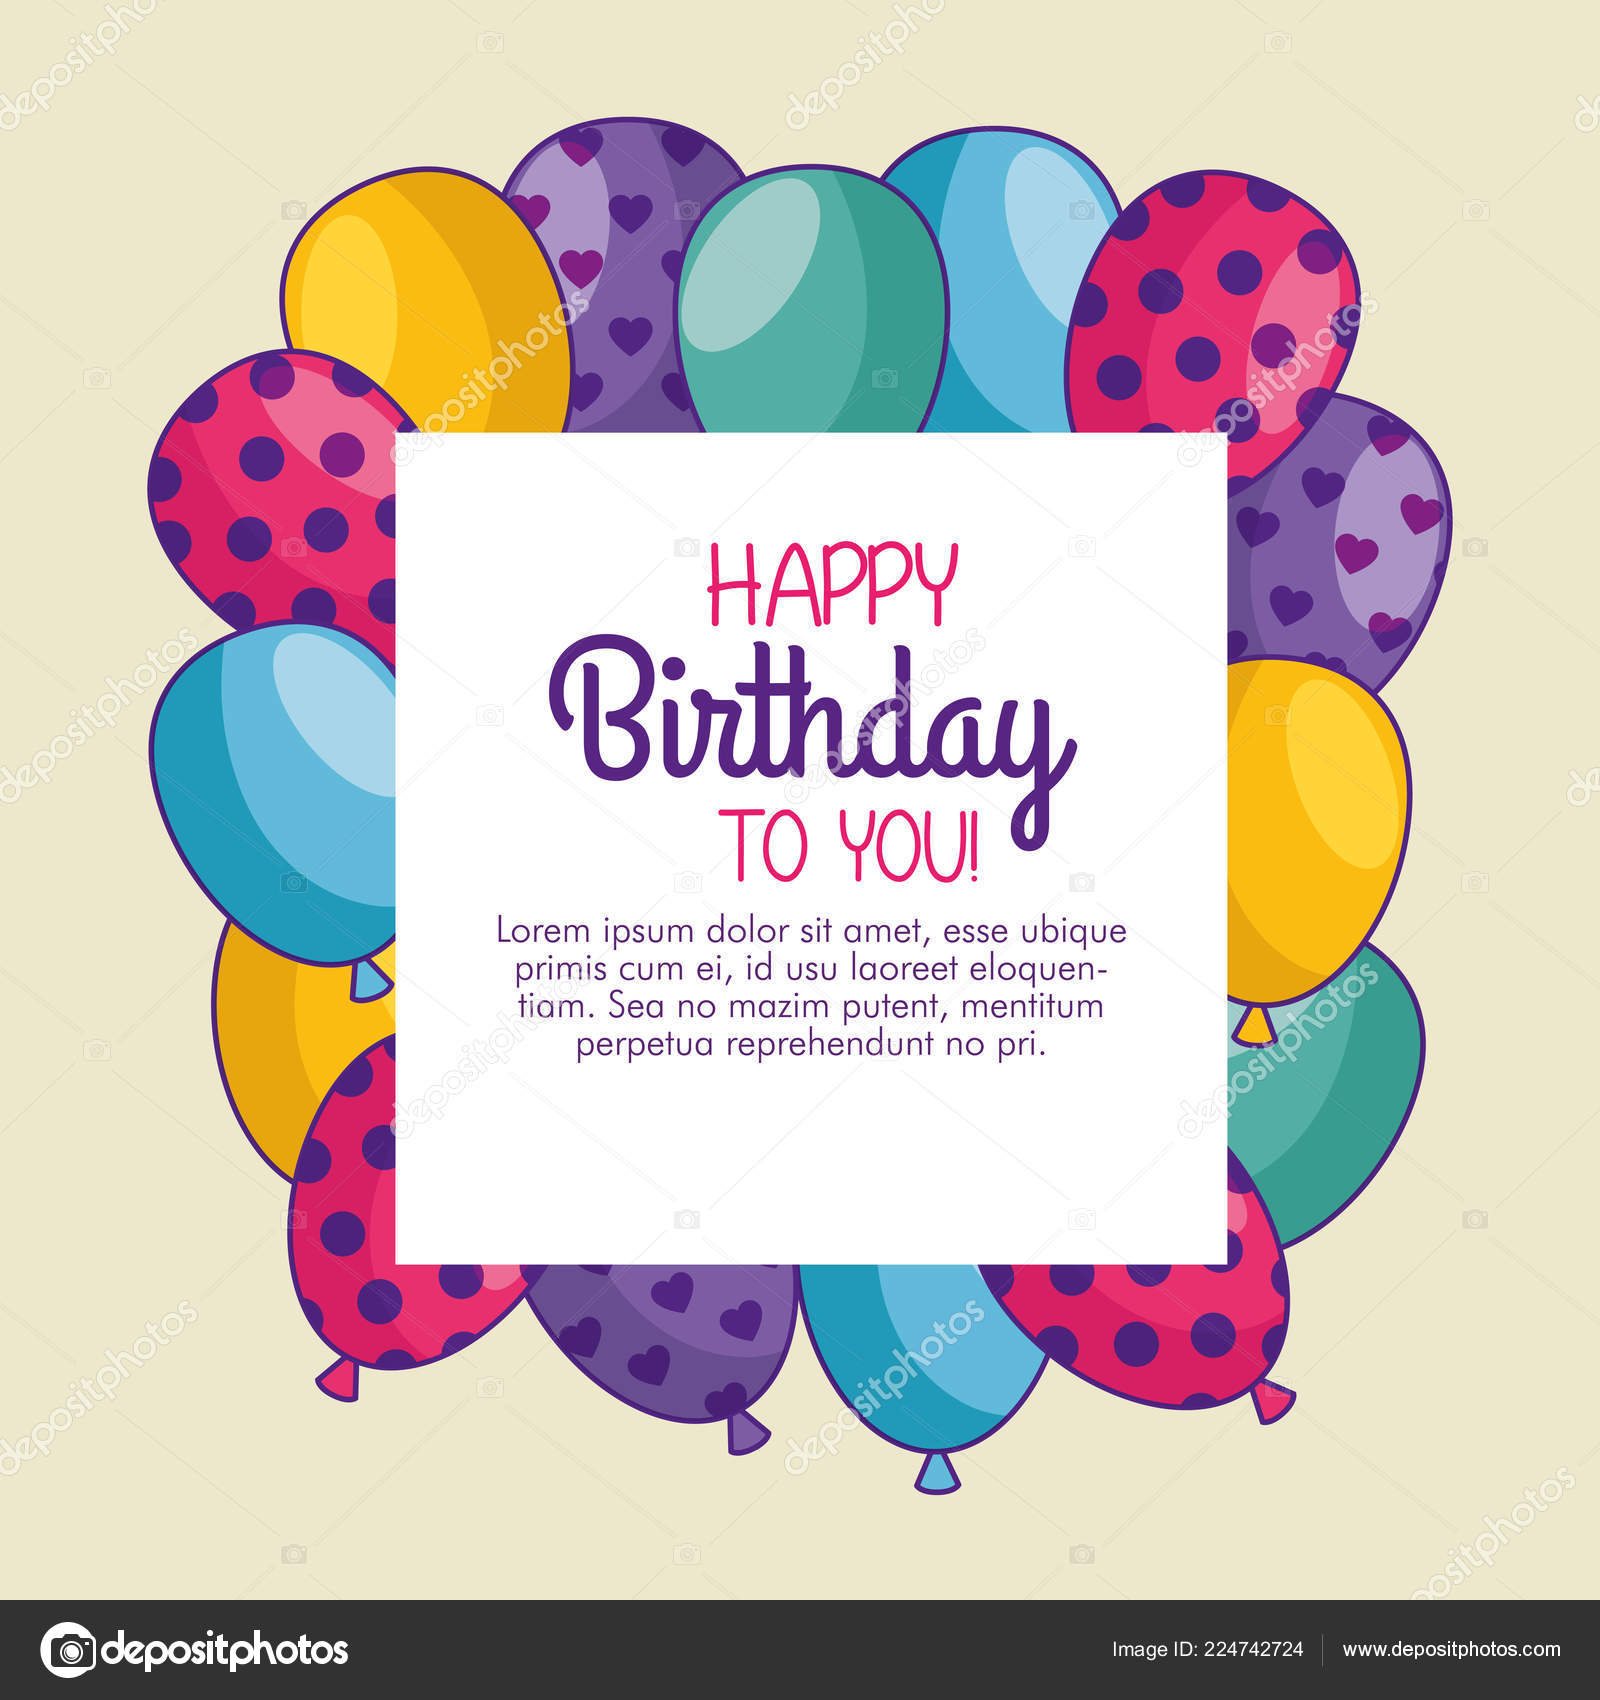 Happy birthday card with balloons decoration 6